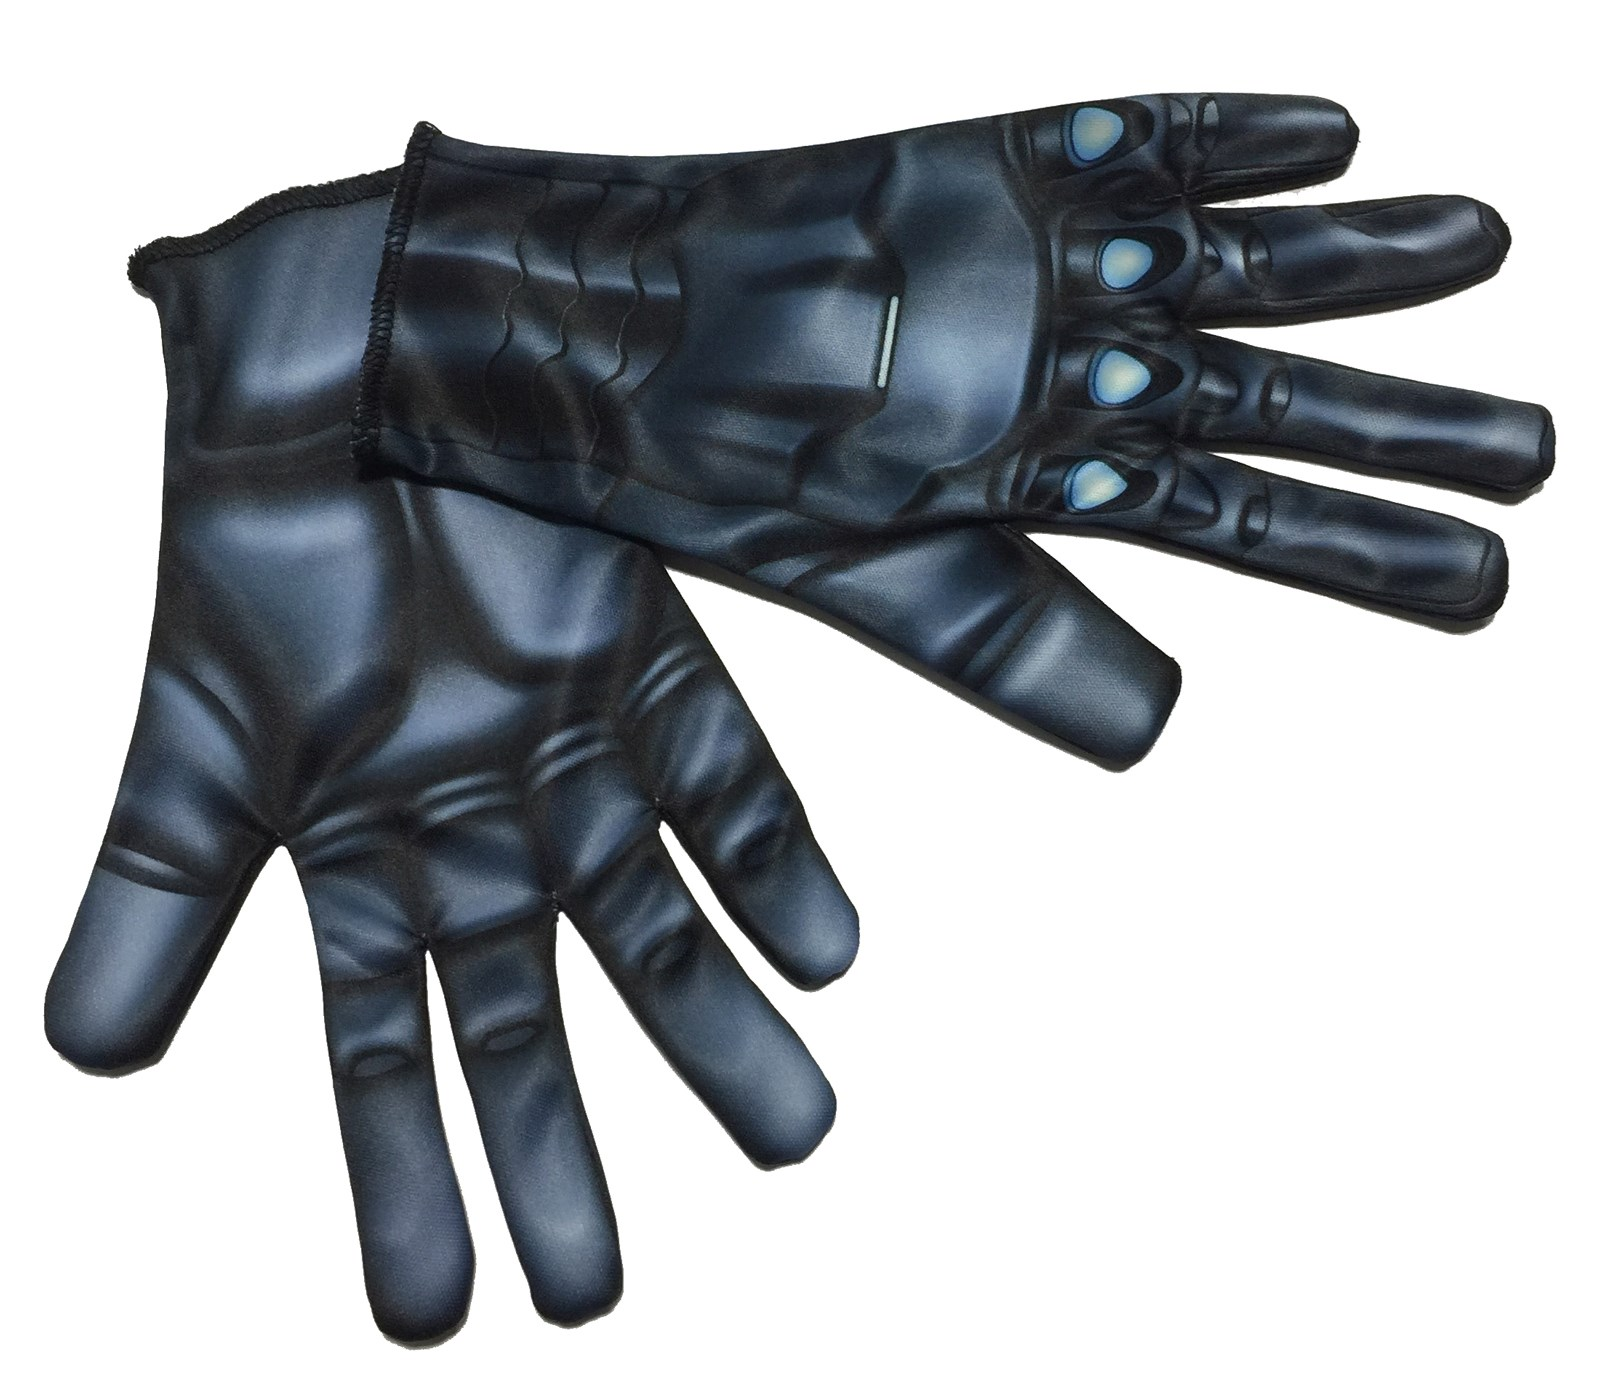 Avengers 2 - Age of Ultron: Adult Black Widow Gloves One-Size